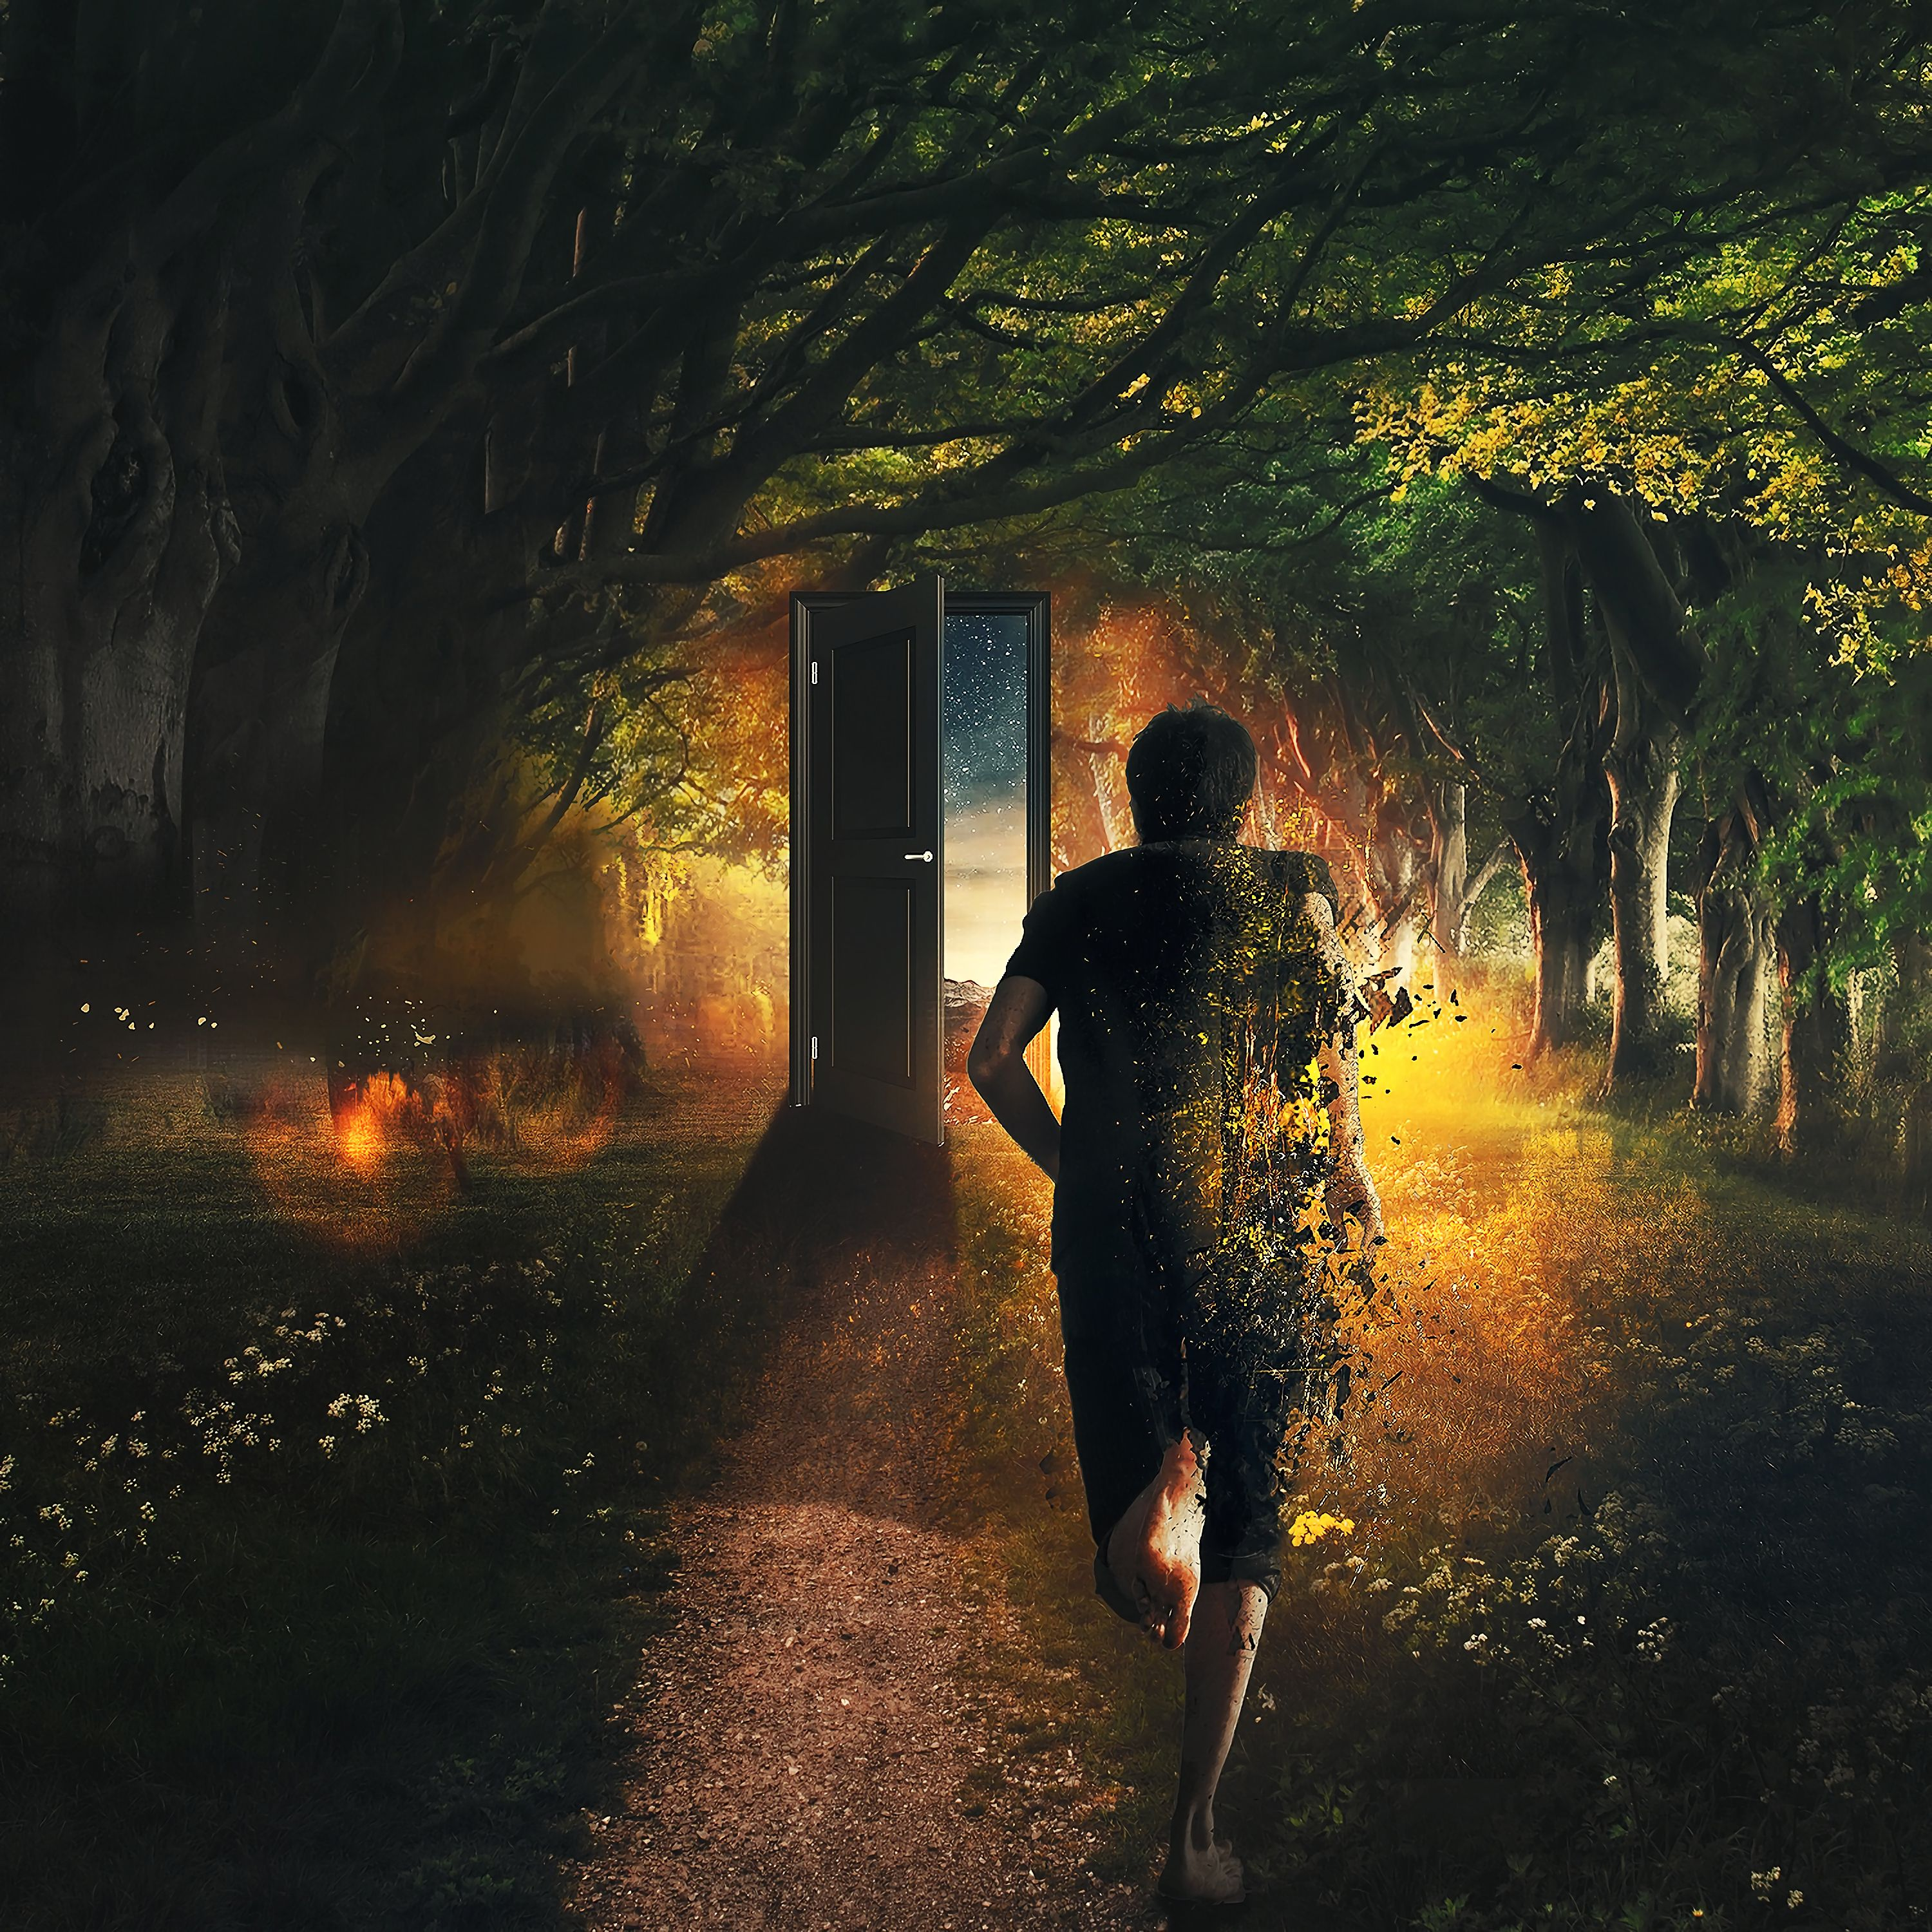 81900 Screensavers and Wallpapers Human for phone. Download Art, Forest, Human, Person, Imagination, Door, Run, Time, It's Time, Running pictures for free